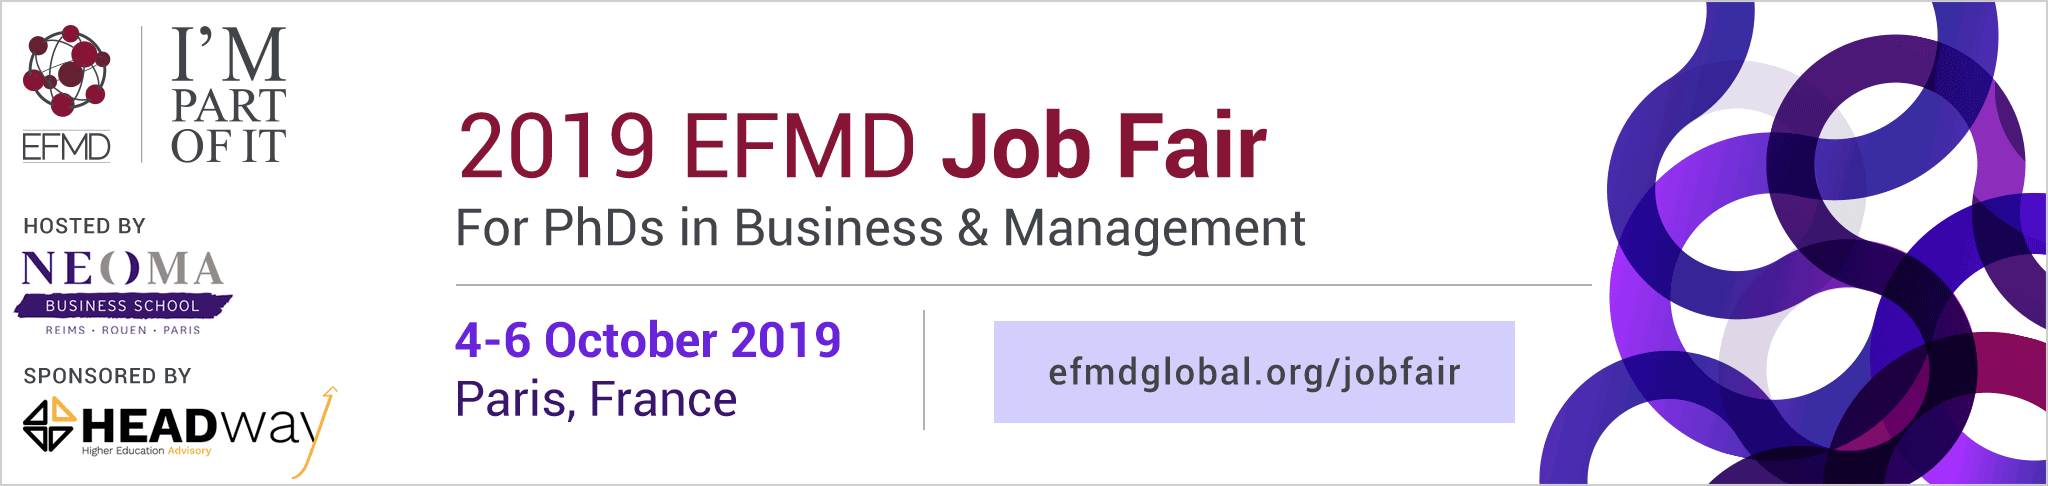 2019 EFMD Job Fair for PhDs in Business & Management - NEOMA Business School - Paris - France - Friday 4  › Sunday 6 October 2019